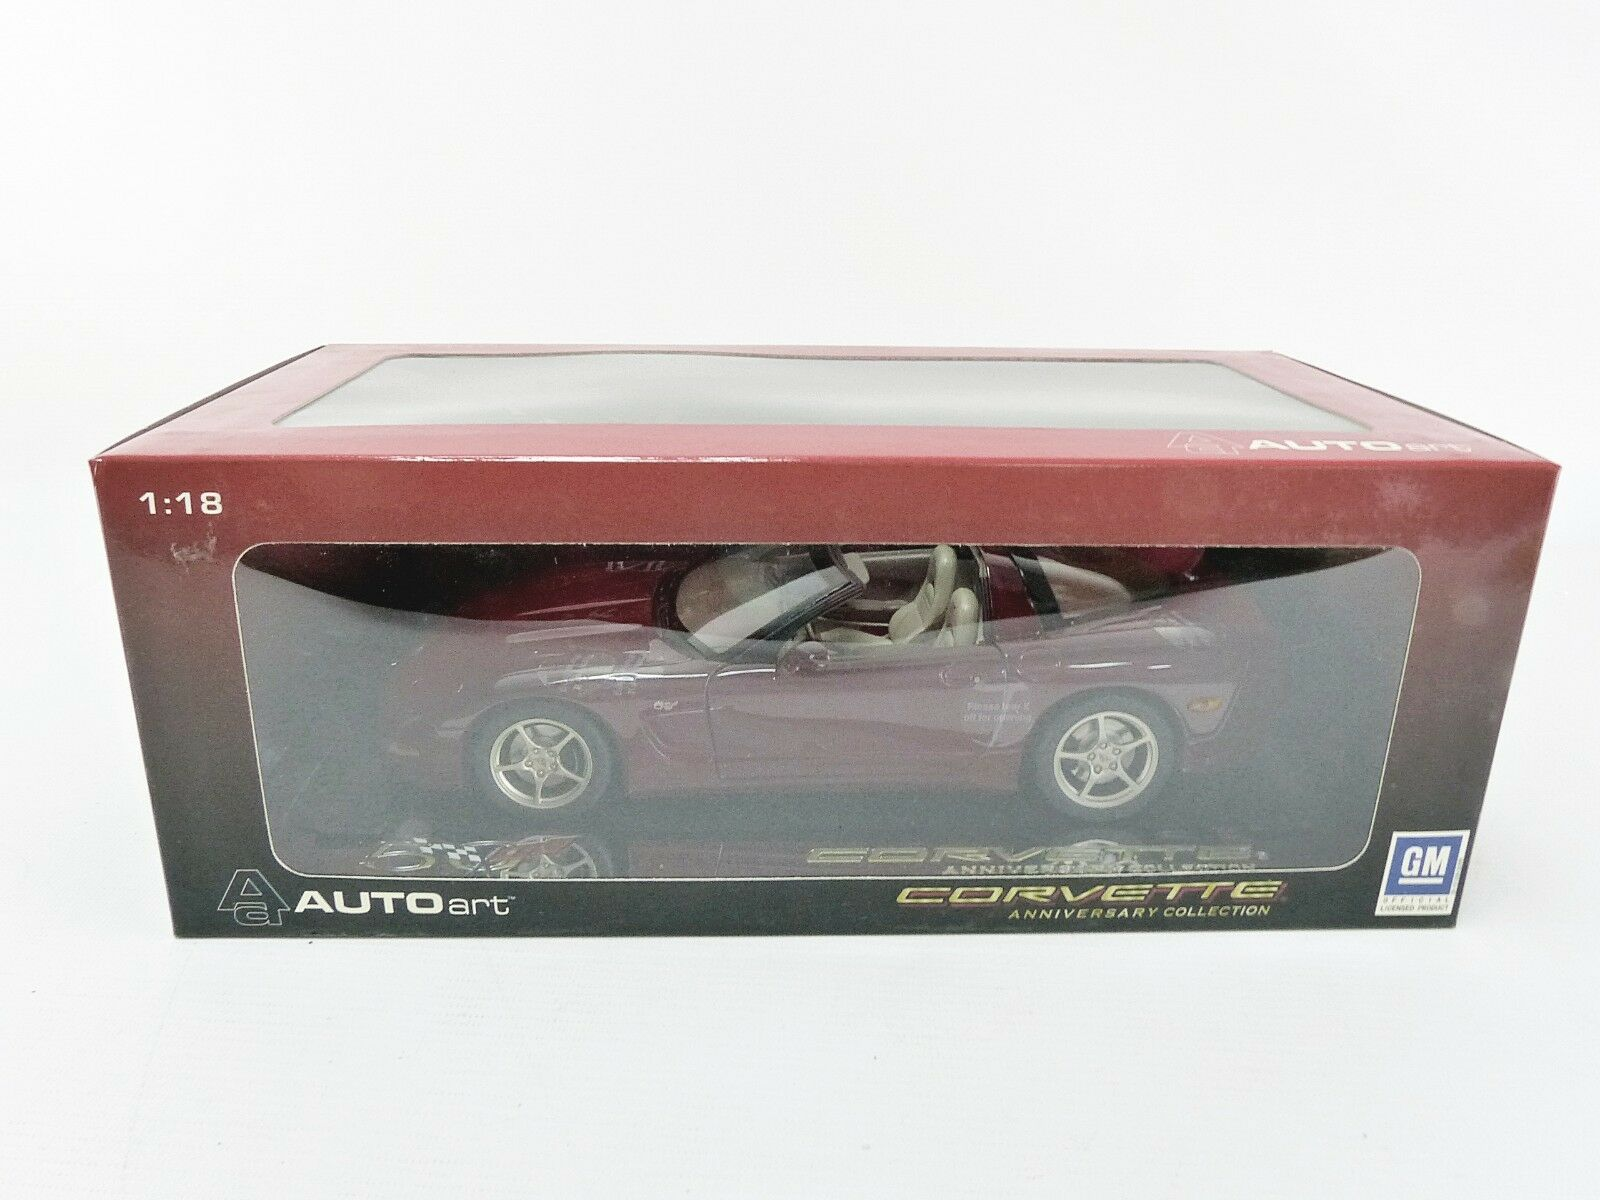 AUTOART 1/18 - CHEVROLET CORVETTE 2003 - 50TH ANNIVERSARY - 71156